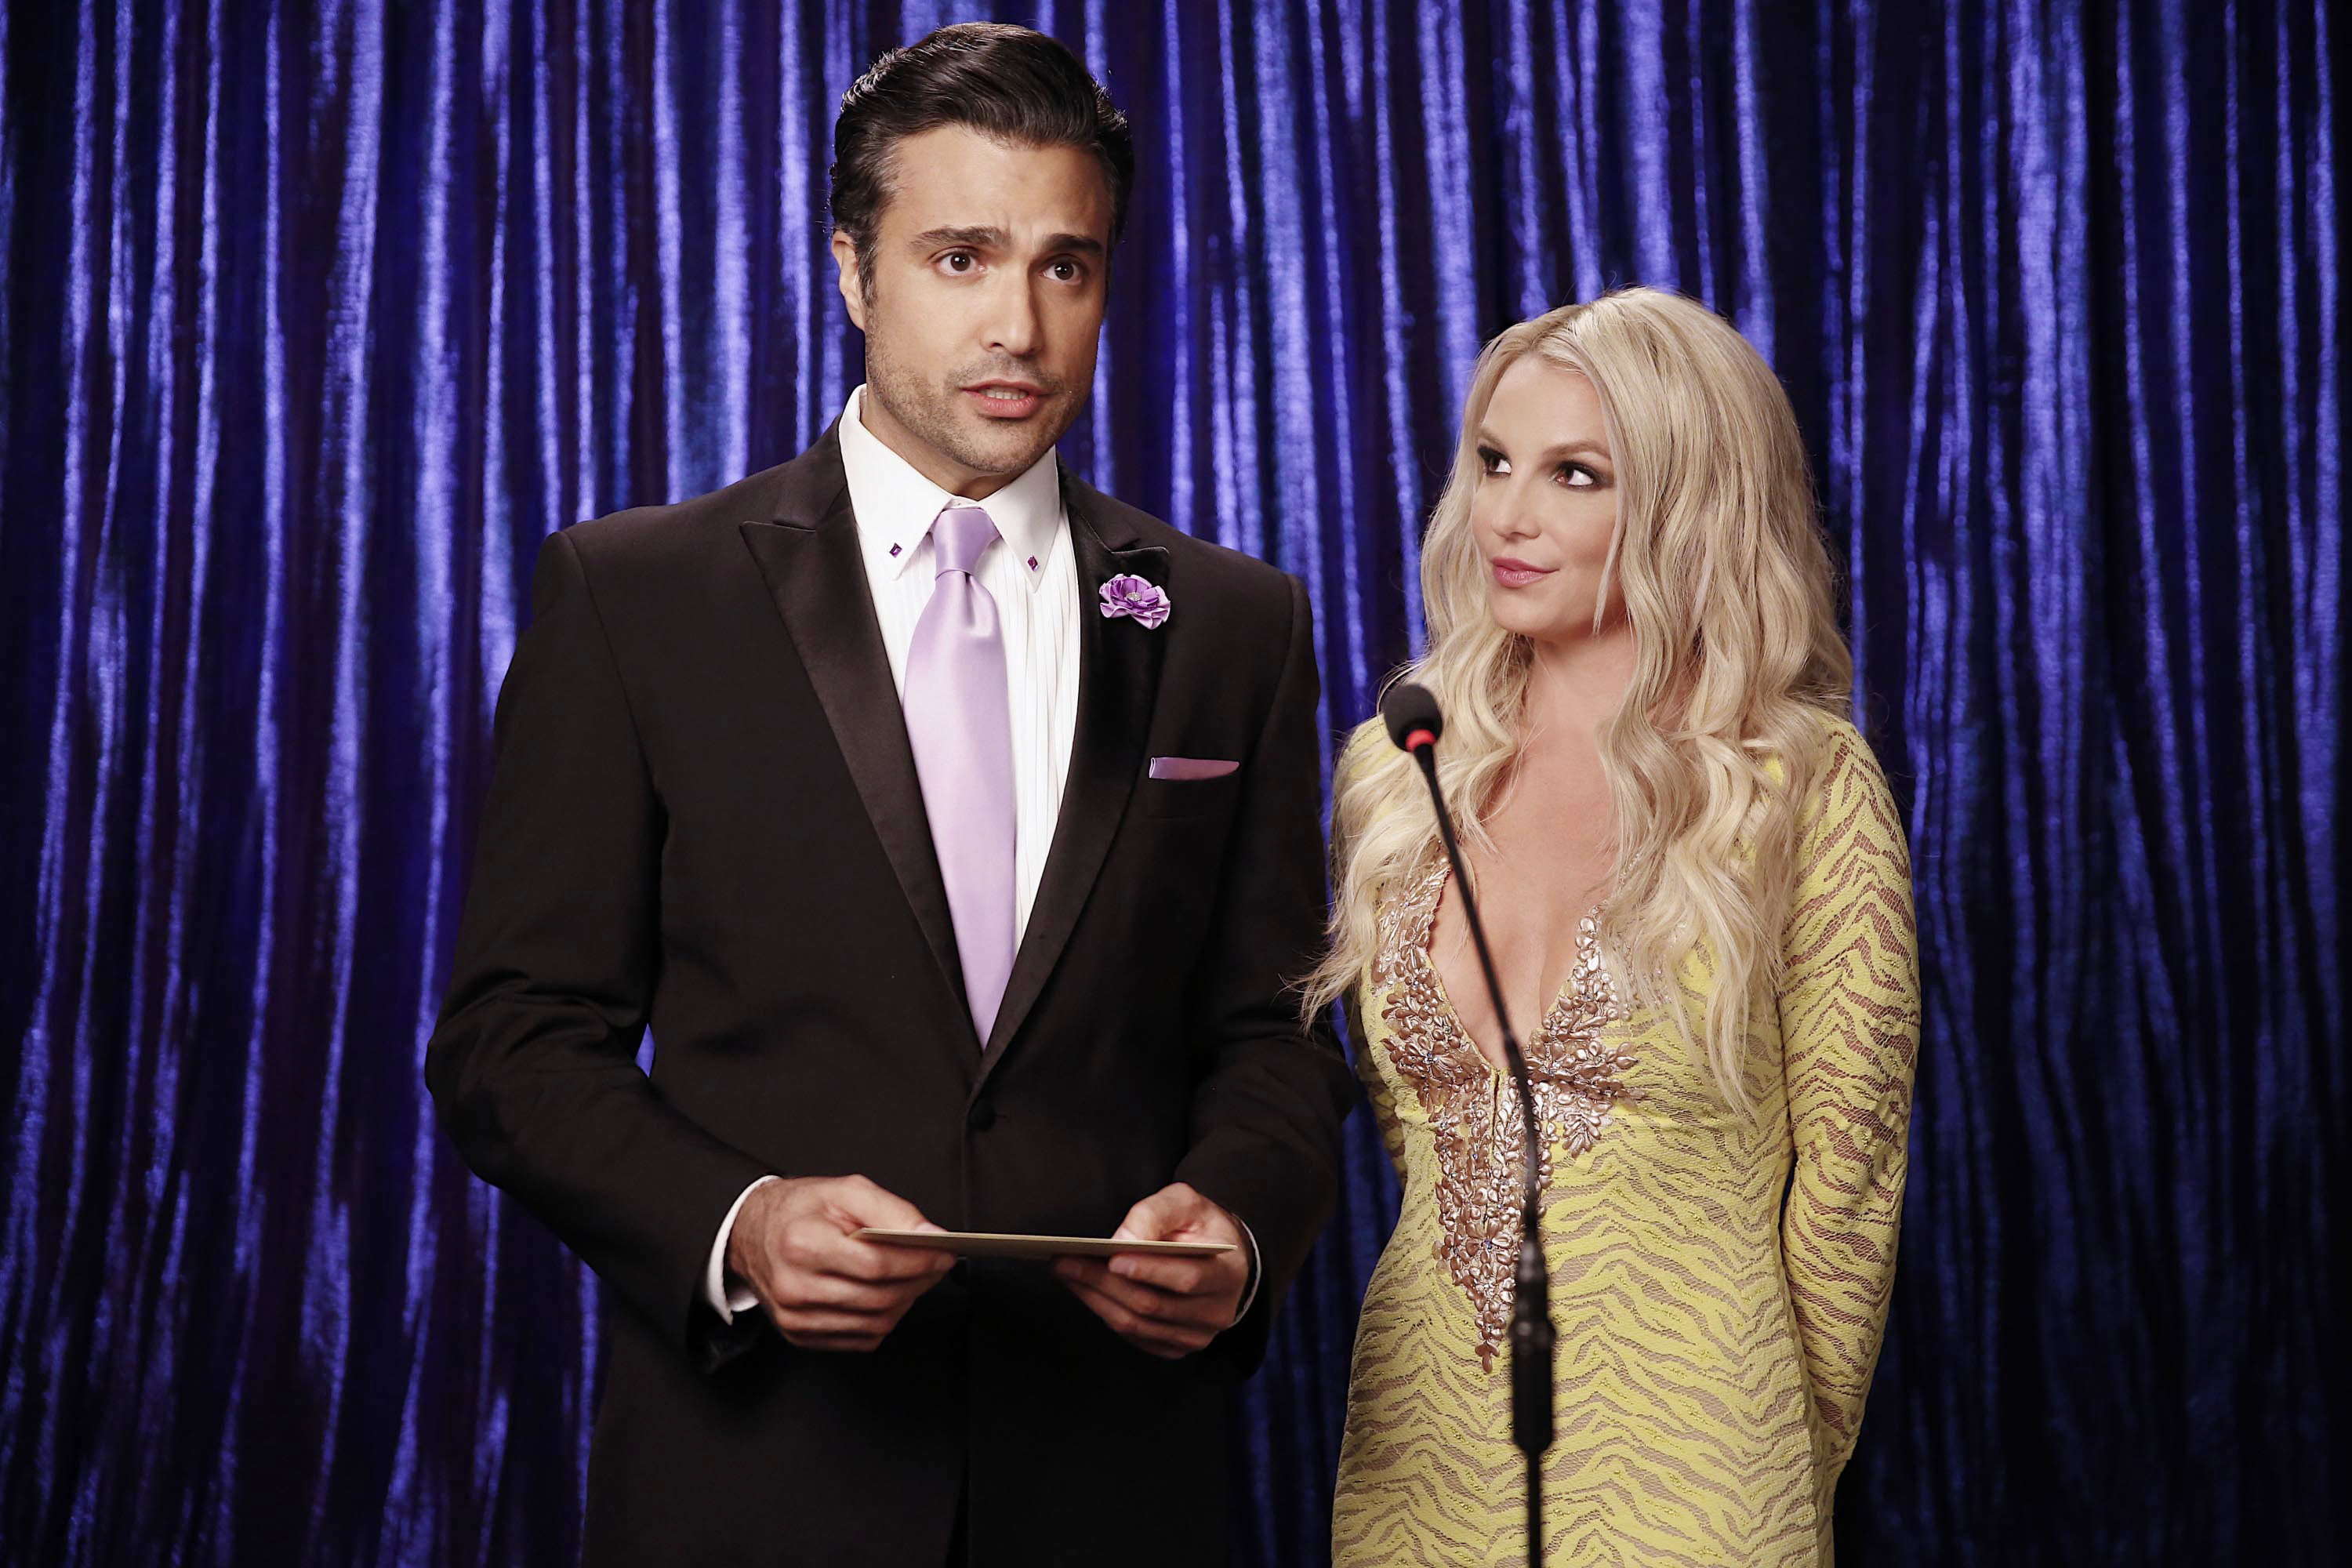 Rogelio presenting next to Britney on the show